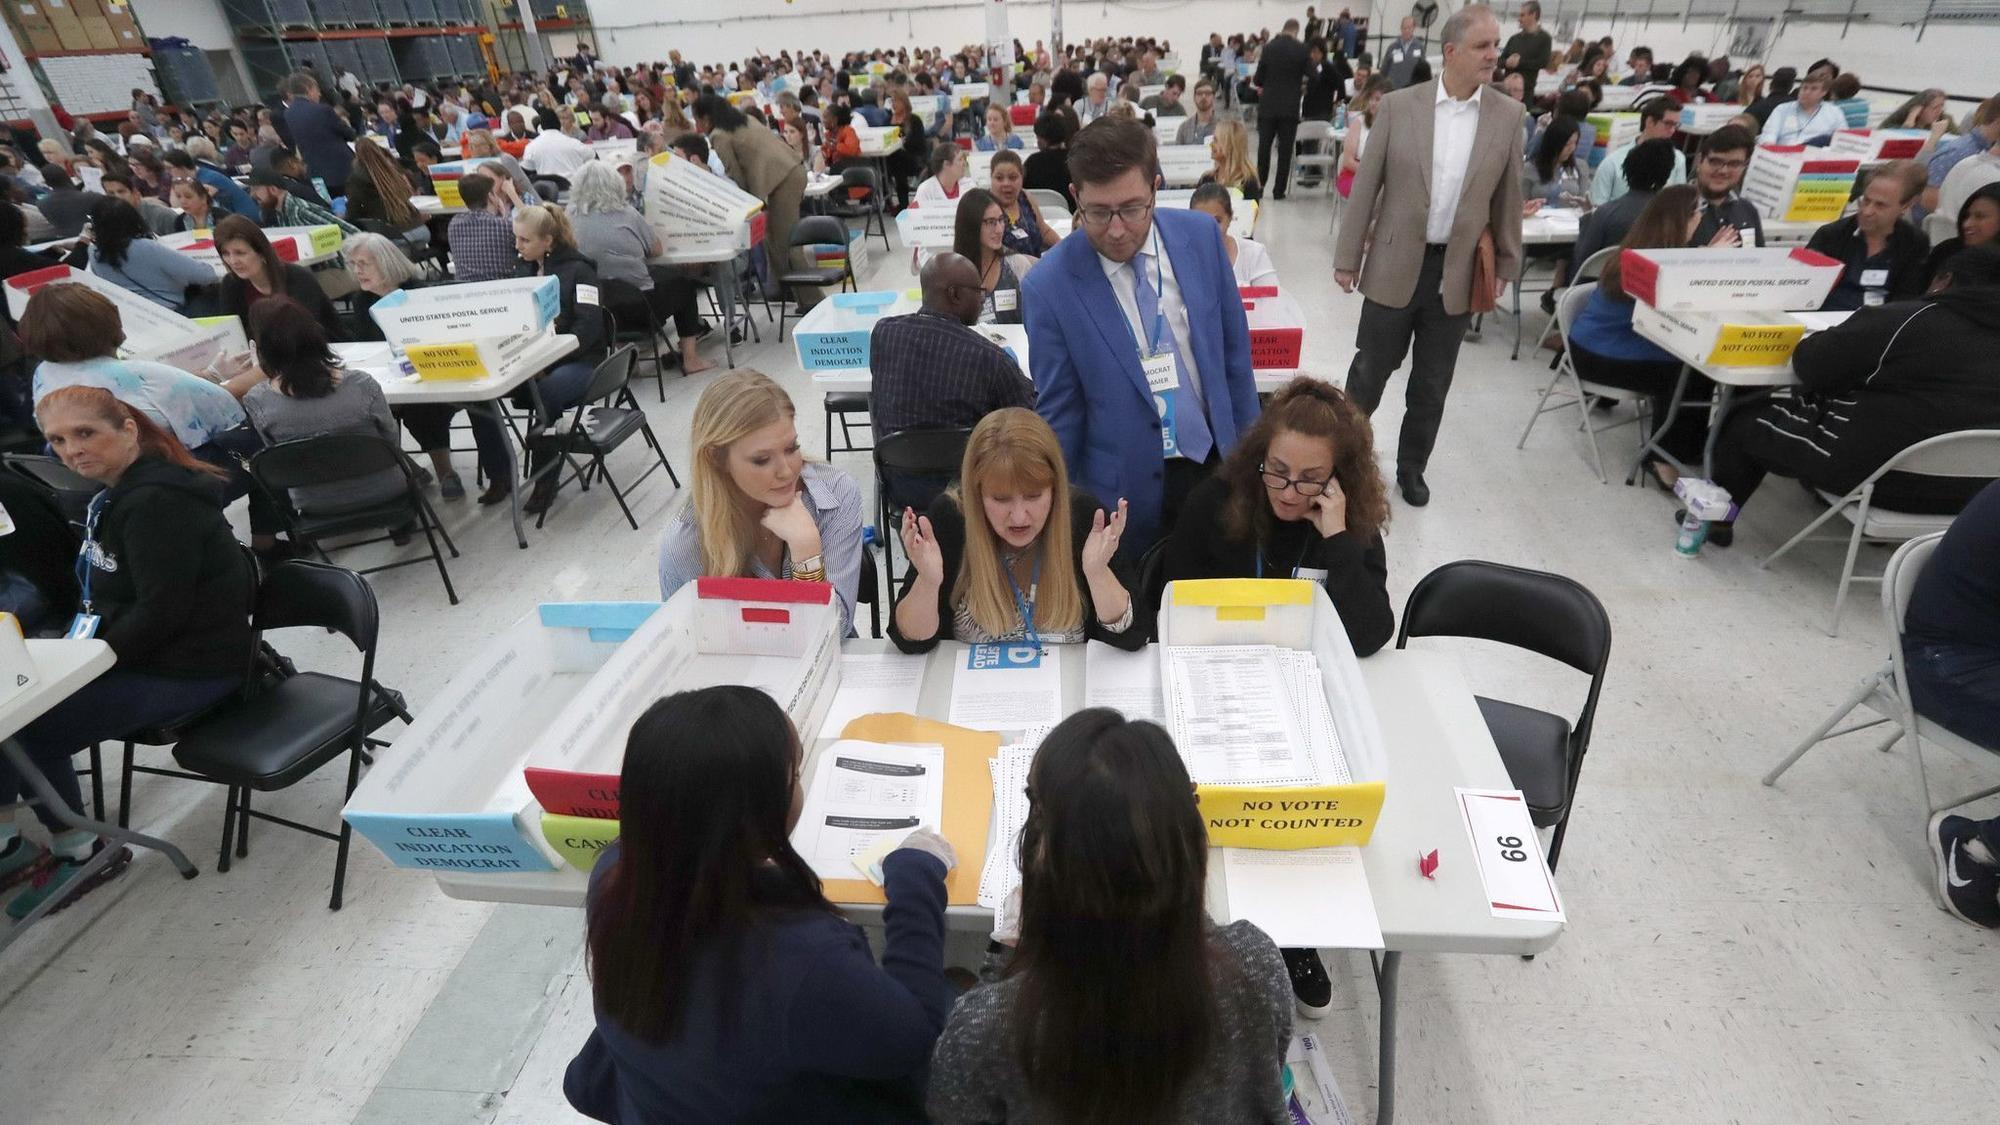 Florida Elections Supervisors Say Changes Needed But Not